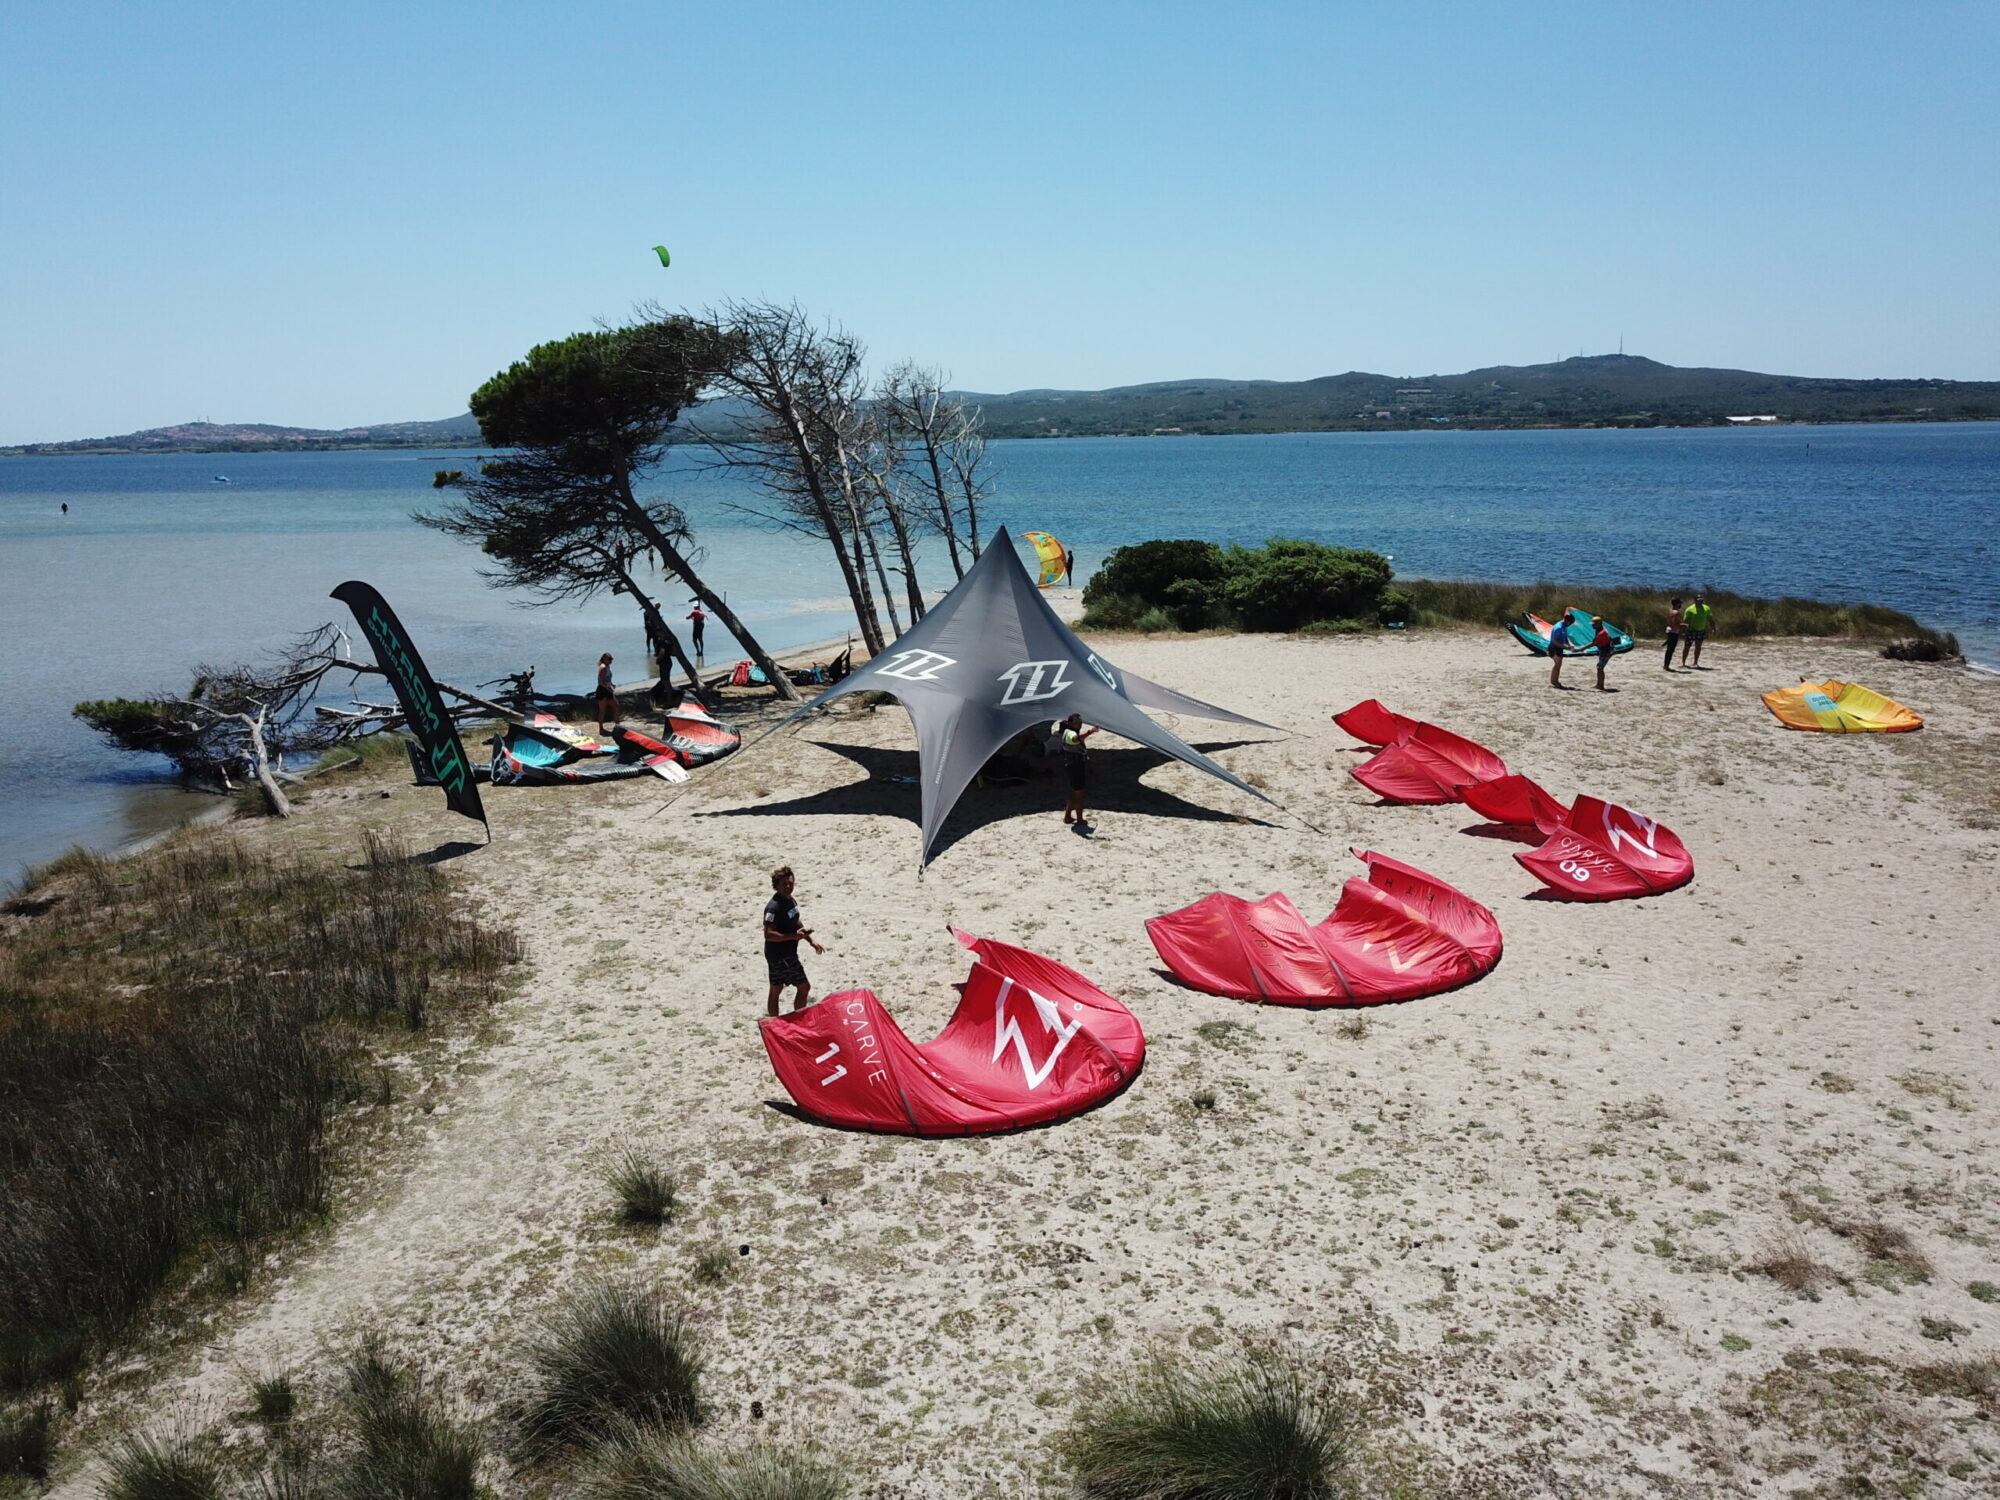 The Kite Beach of Punta Trettu in Sardinia